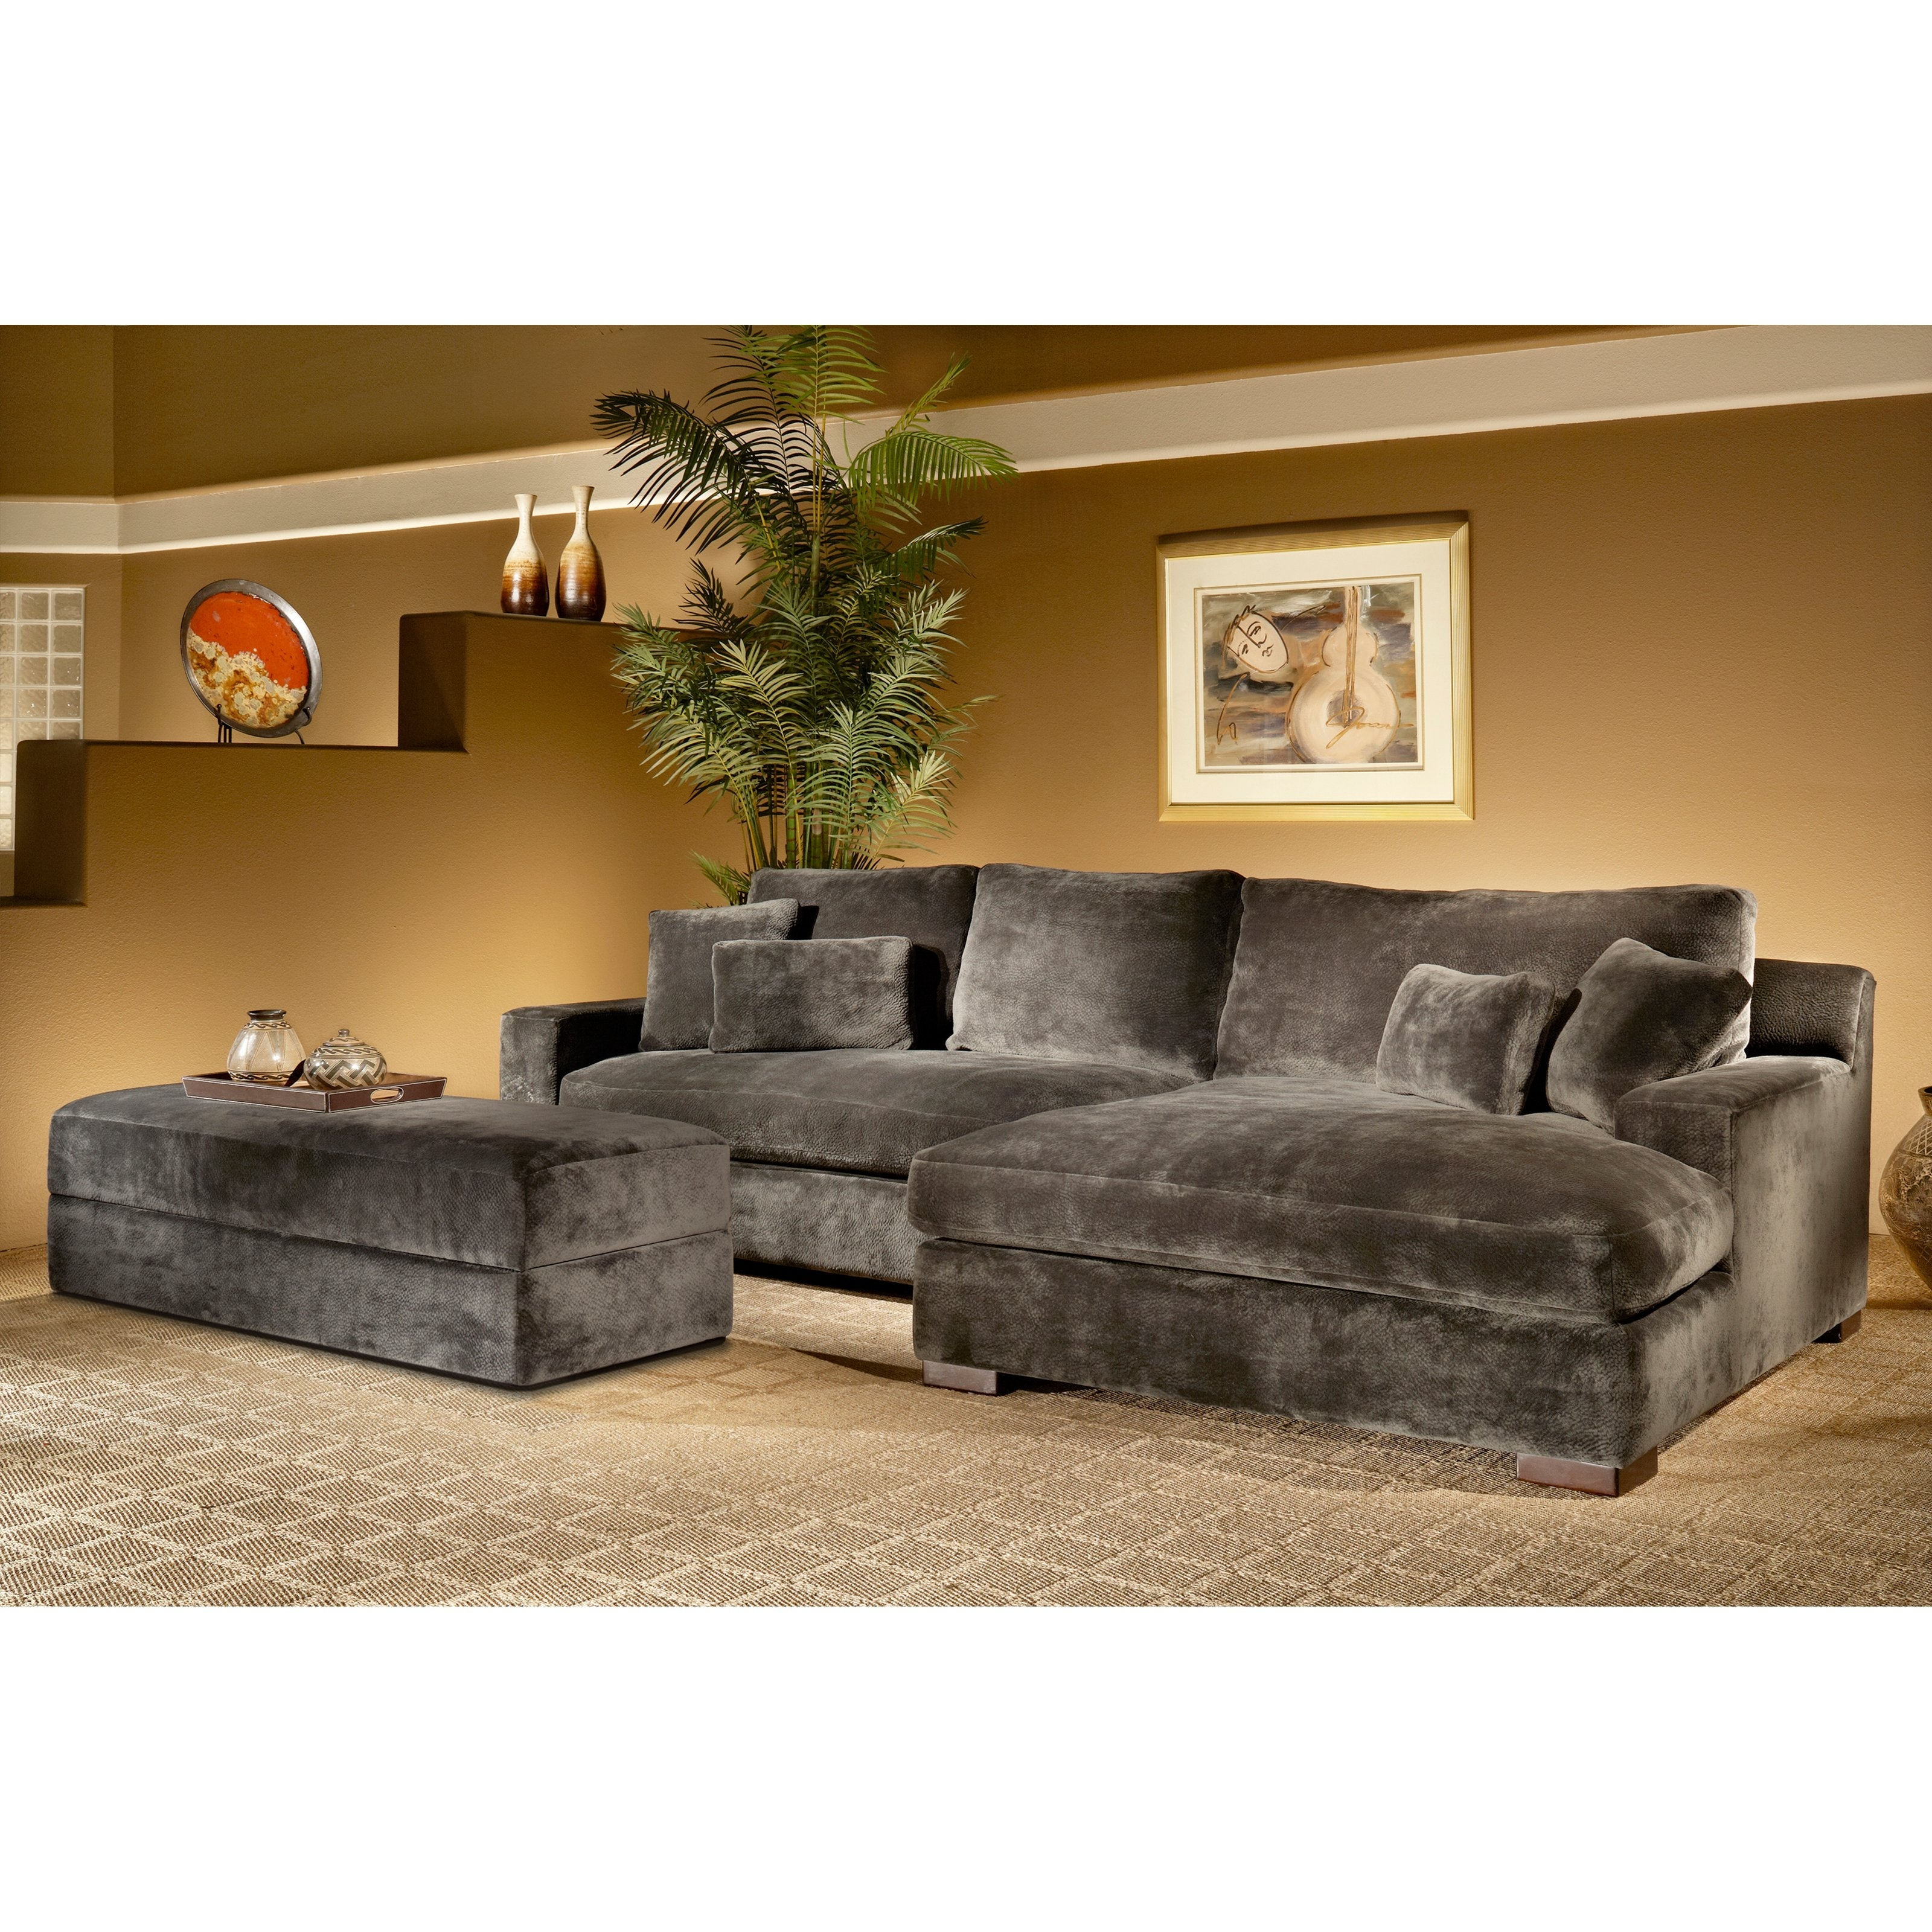 Fairmont Designs Doris 2 Piece Sectional Sofa With Storage Ottoman With Regard To Well Known Sectional Sofas With Storage (View 12 of 15)